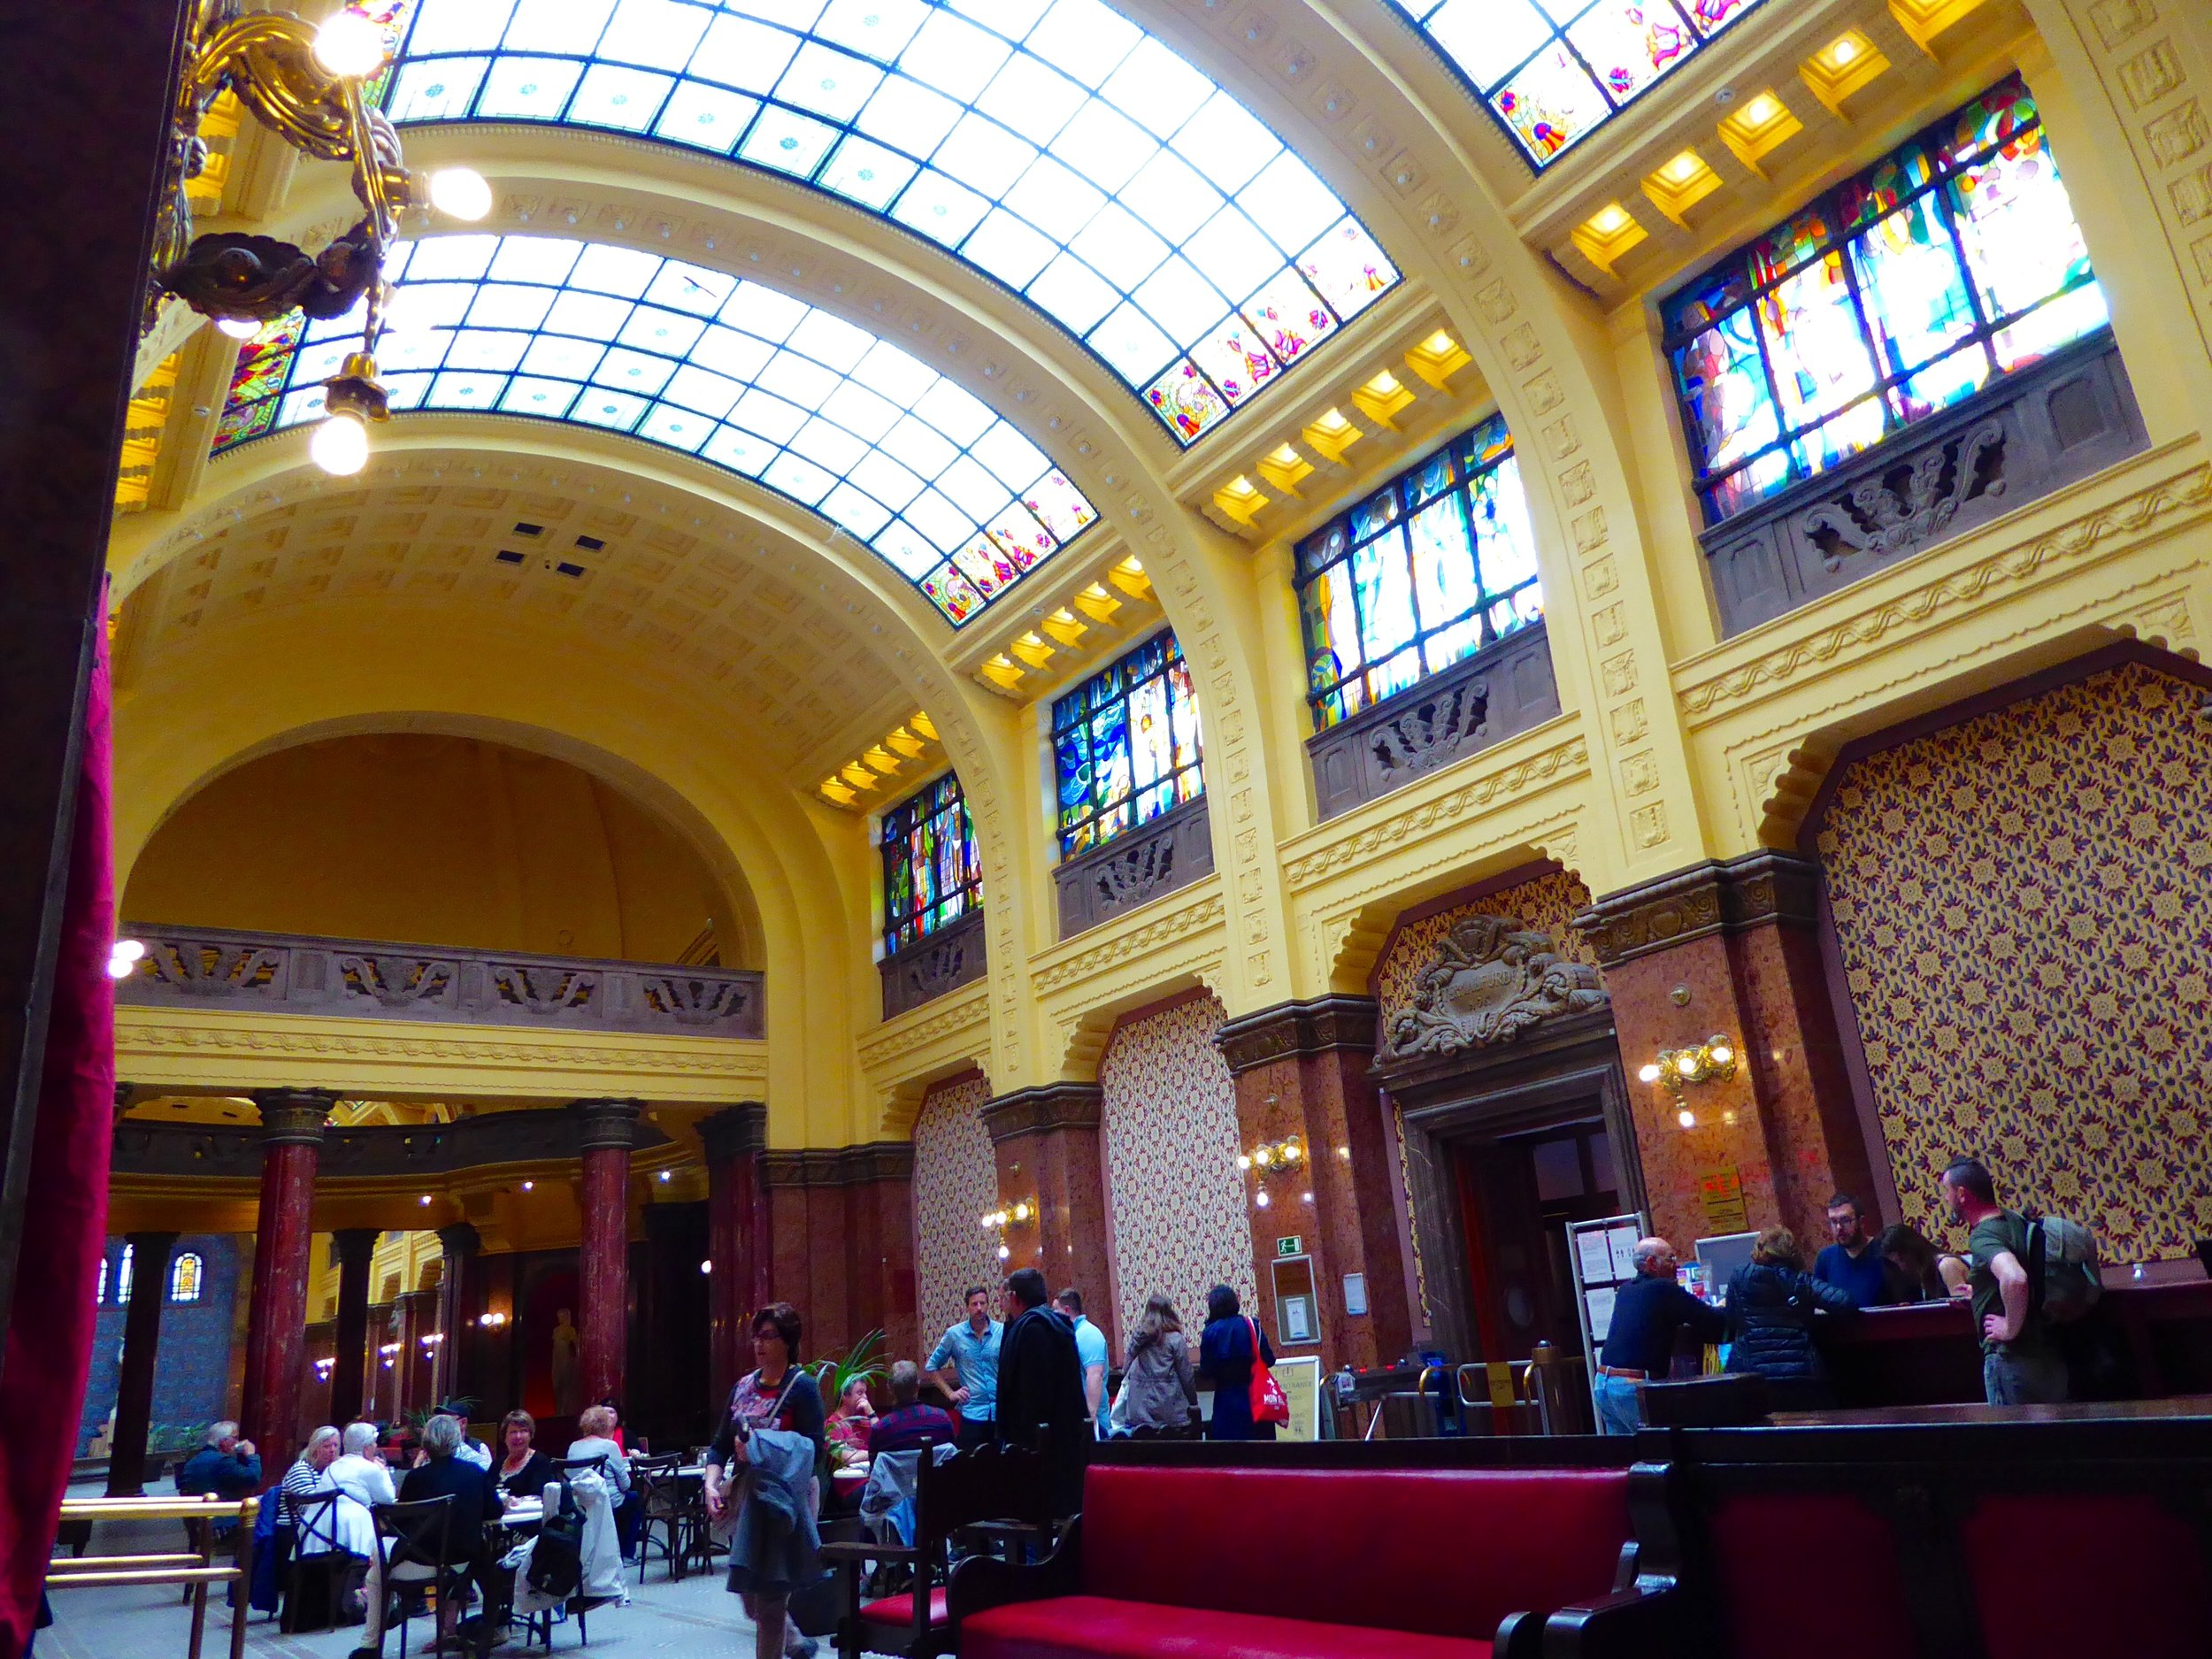 The lobby of the Gillert Hotel.